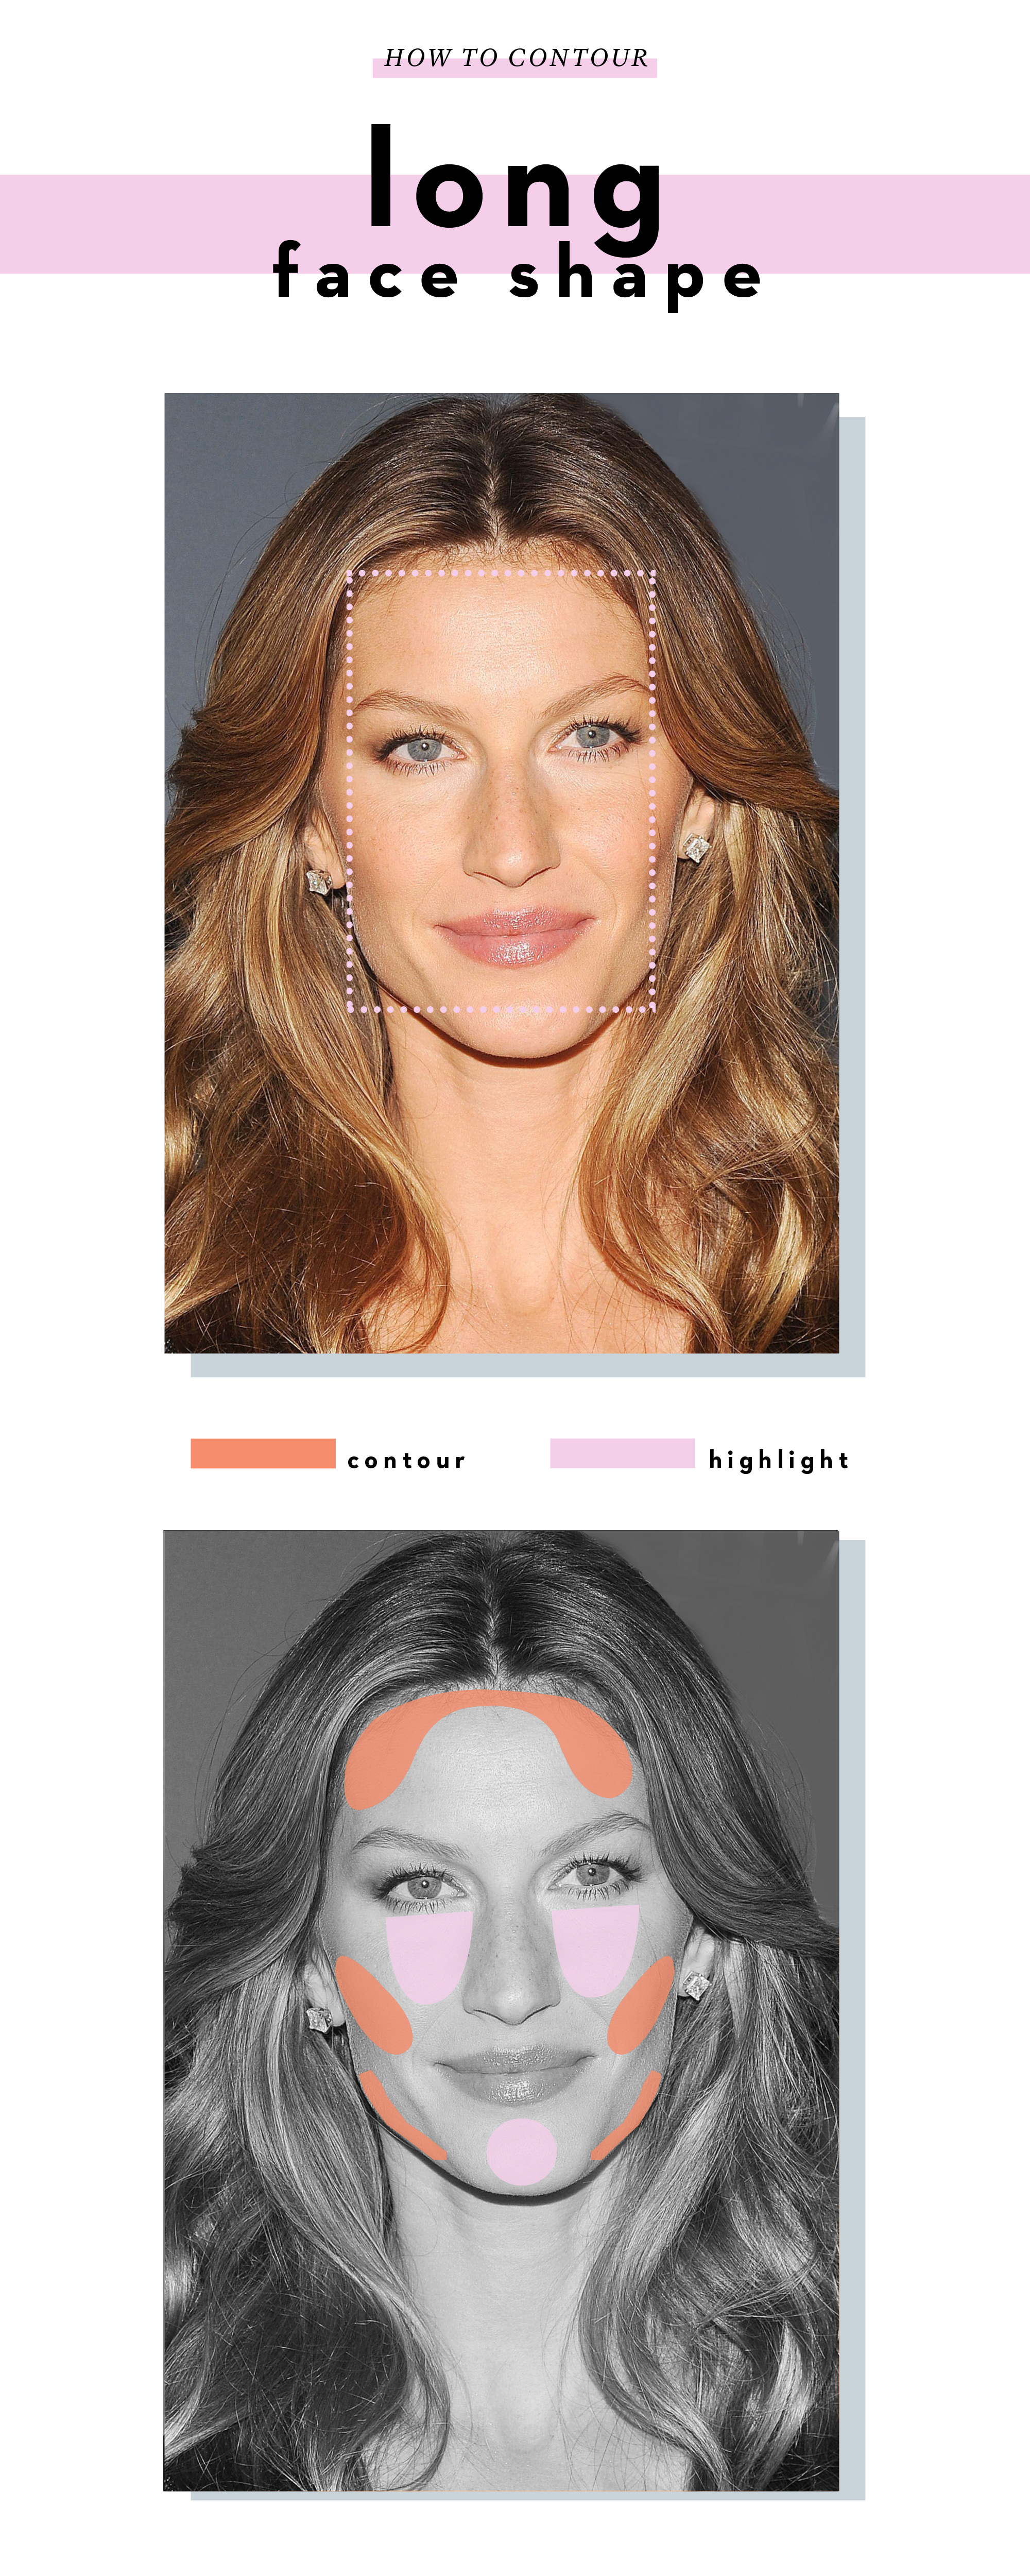 How to contour the definitive guide on how to do it right how to contour a long face shape ccuart Gallery